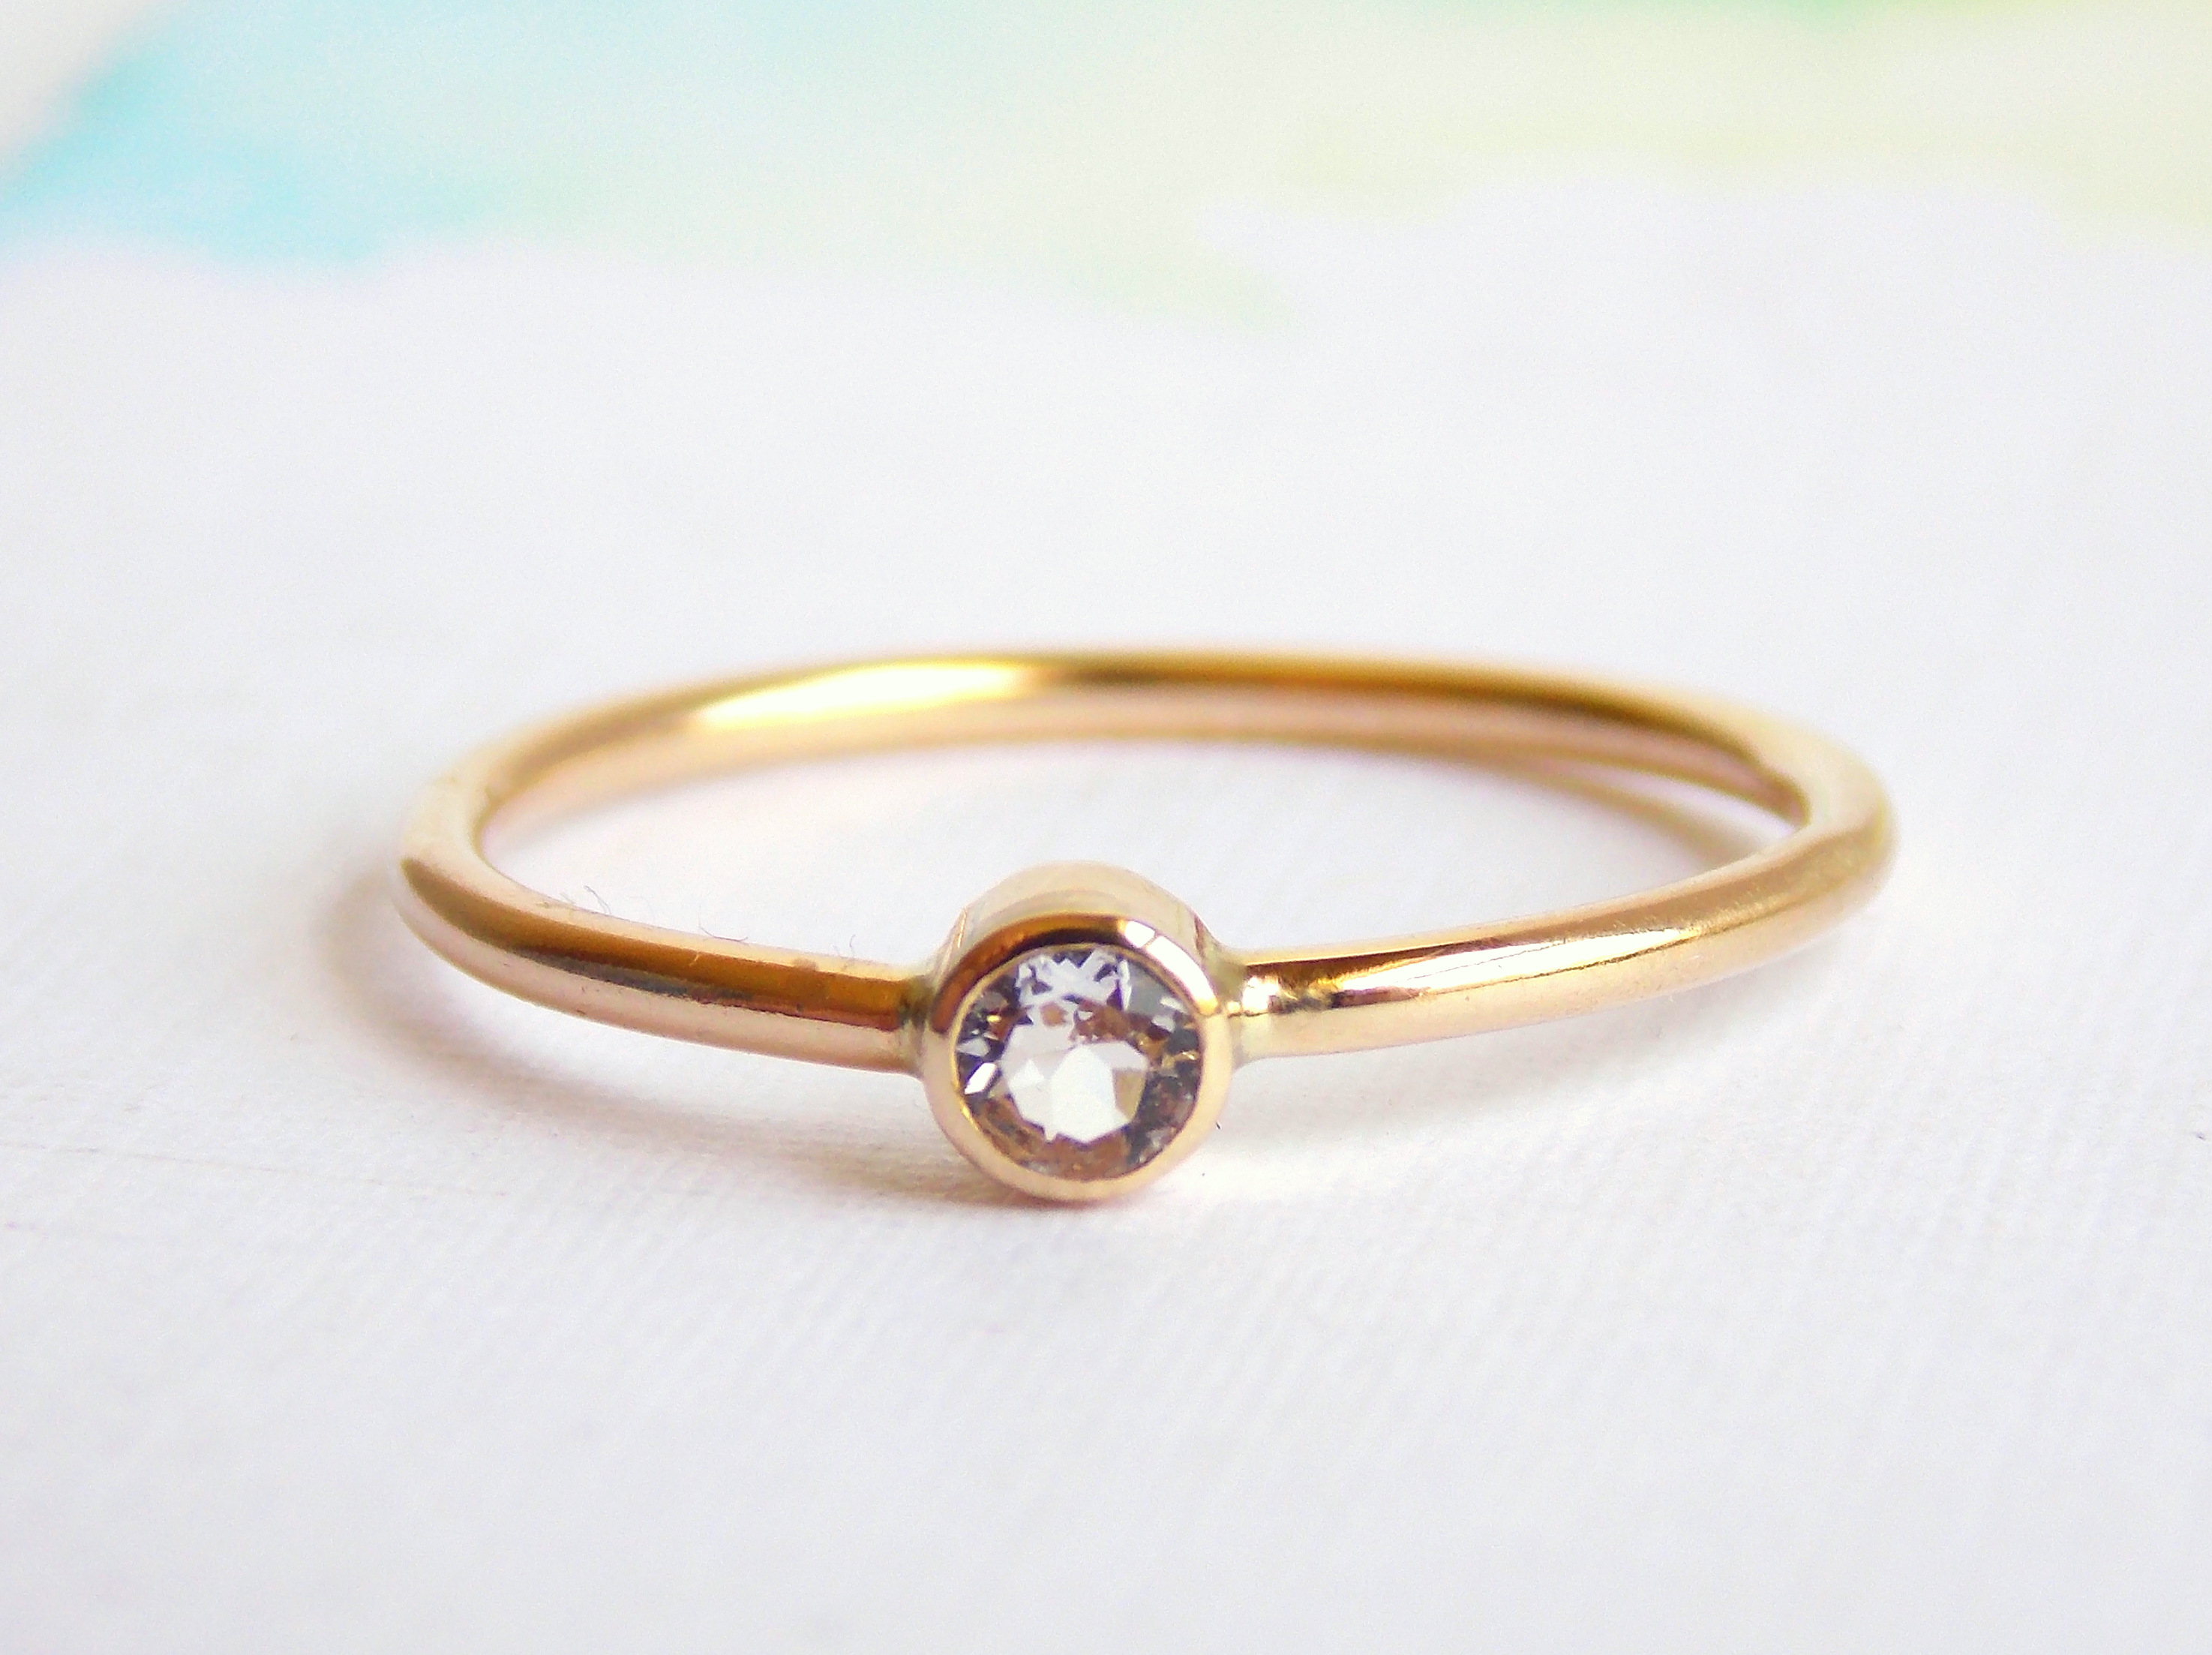 wedding aus pure shop ya ring feingold gold unique de rings precious paar schmuckwerk